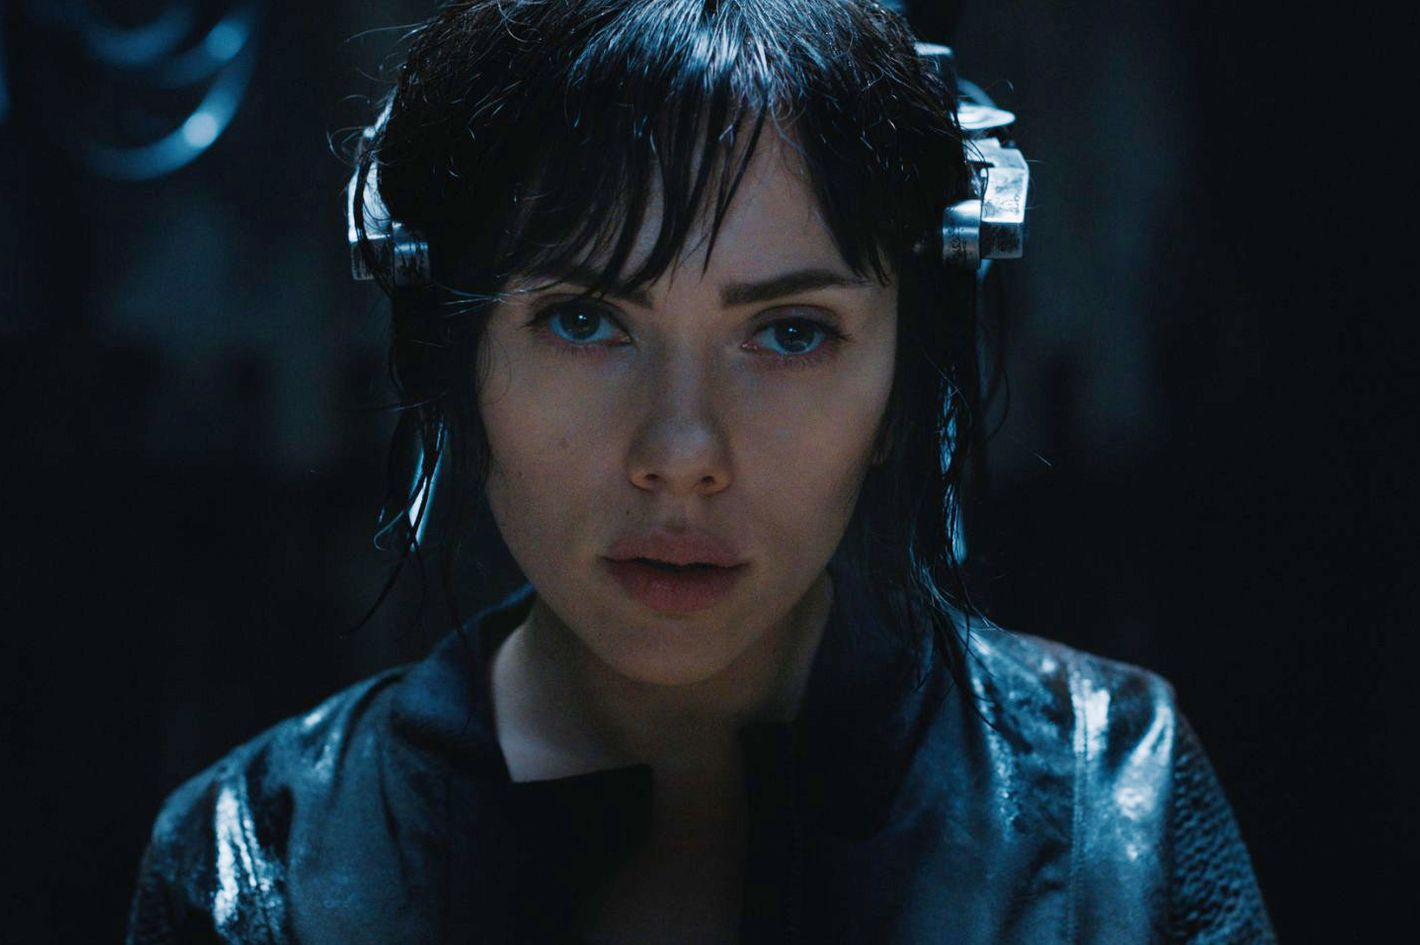 Ghost In The Shell Anime Director Slams Casting Criticism